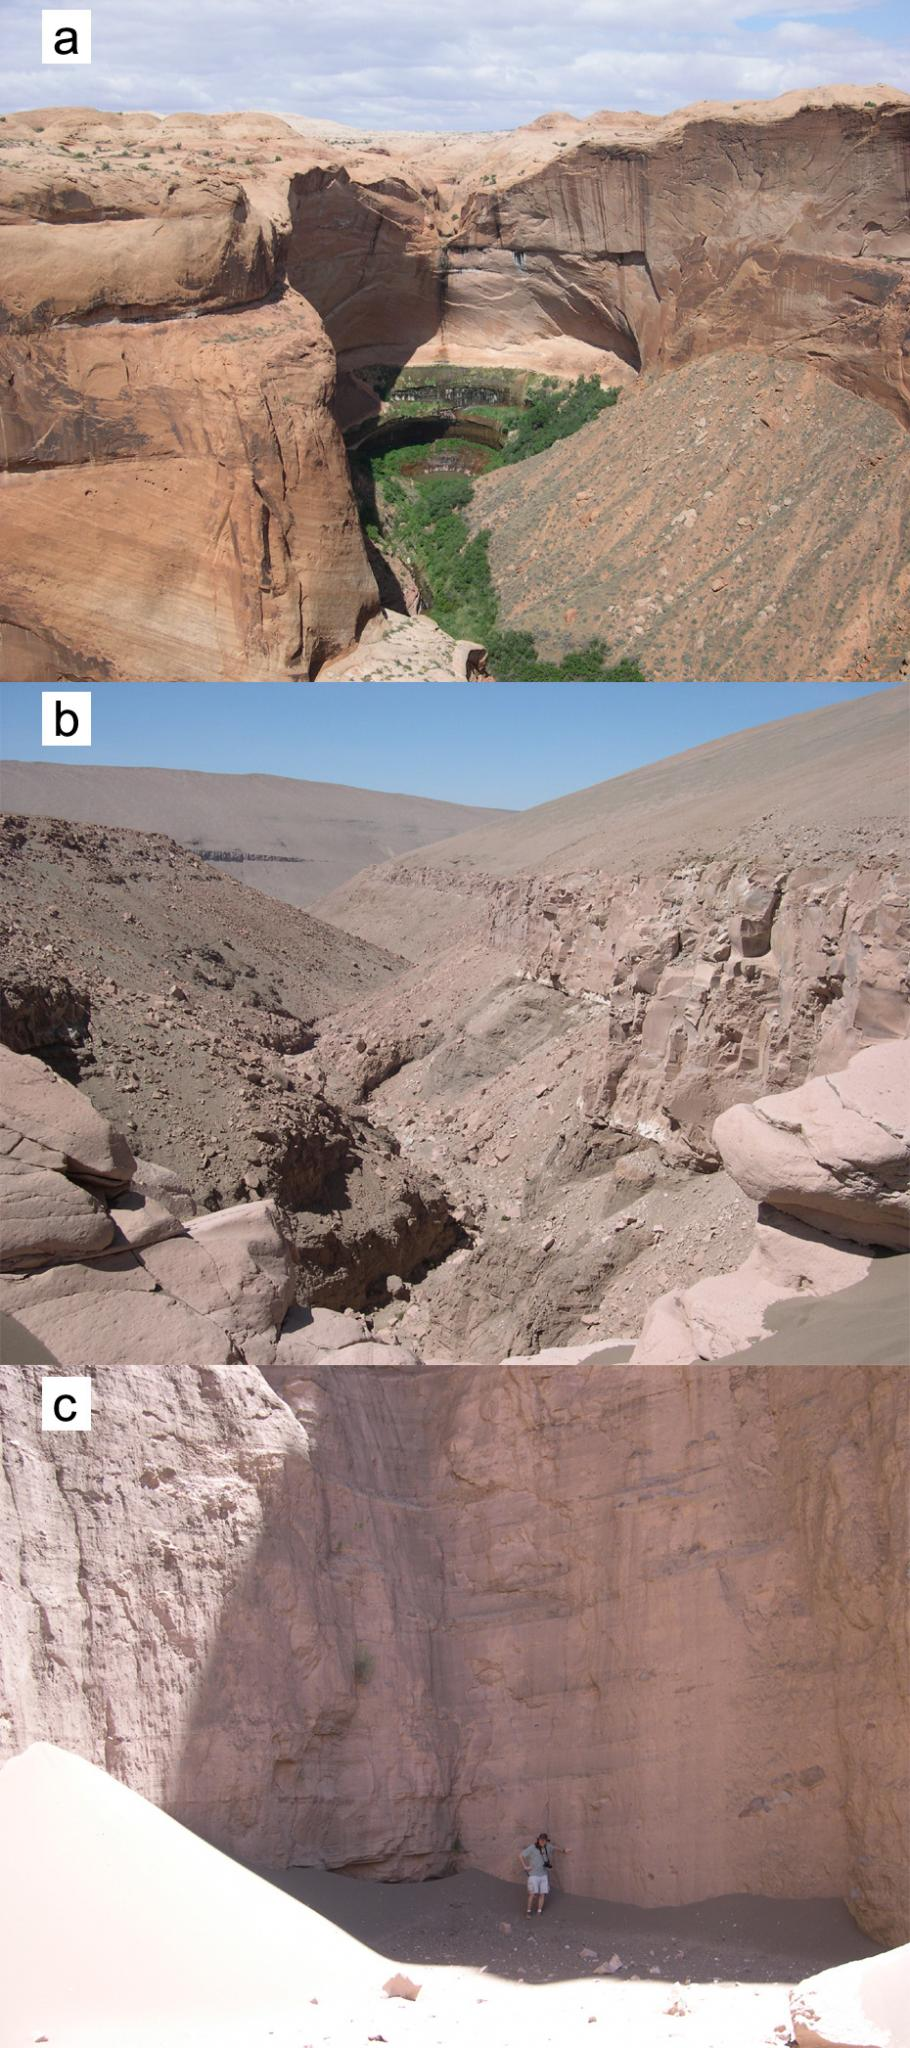 Comparison of Theater-Headed Valleys